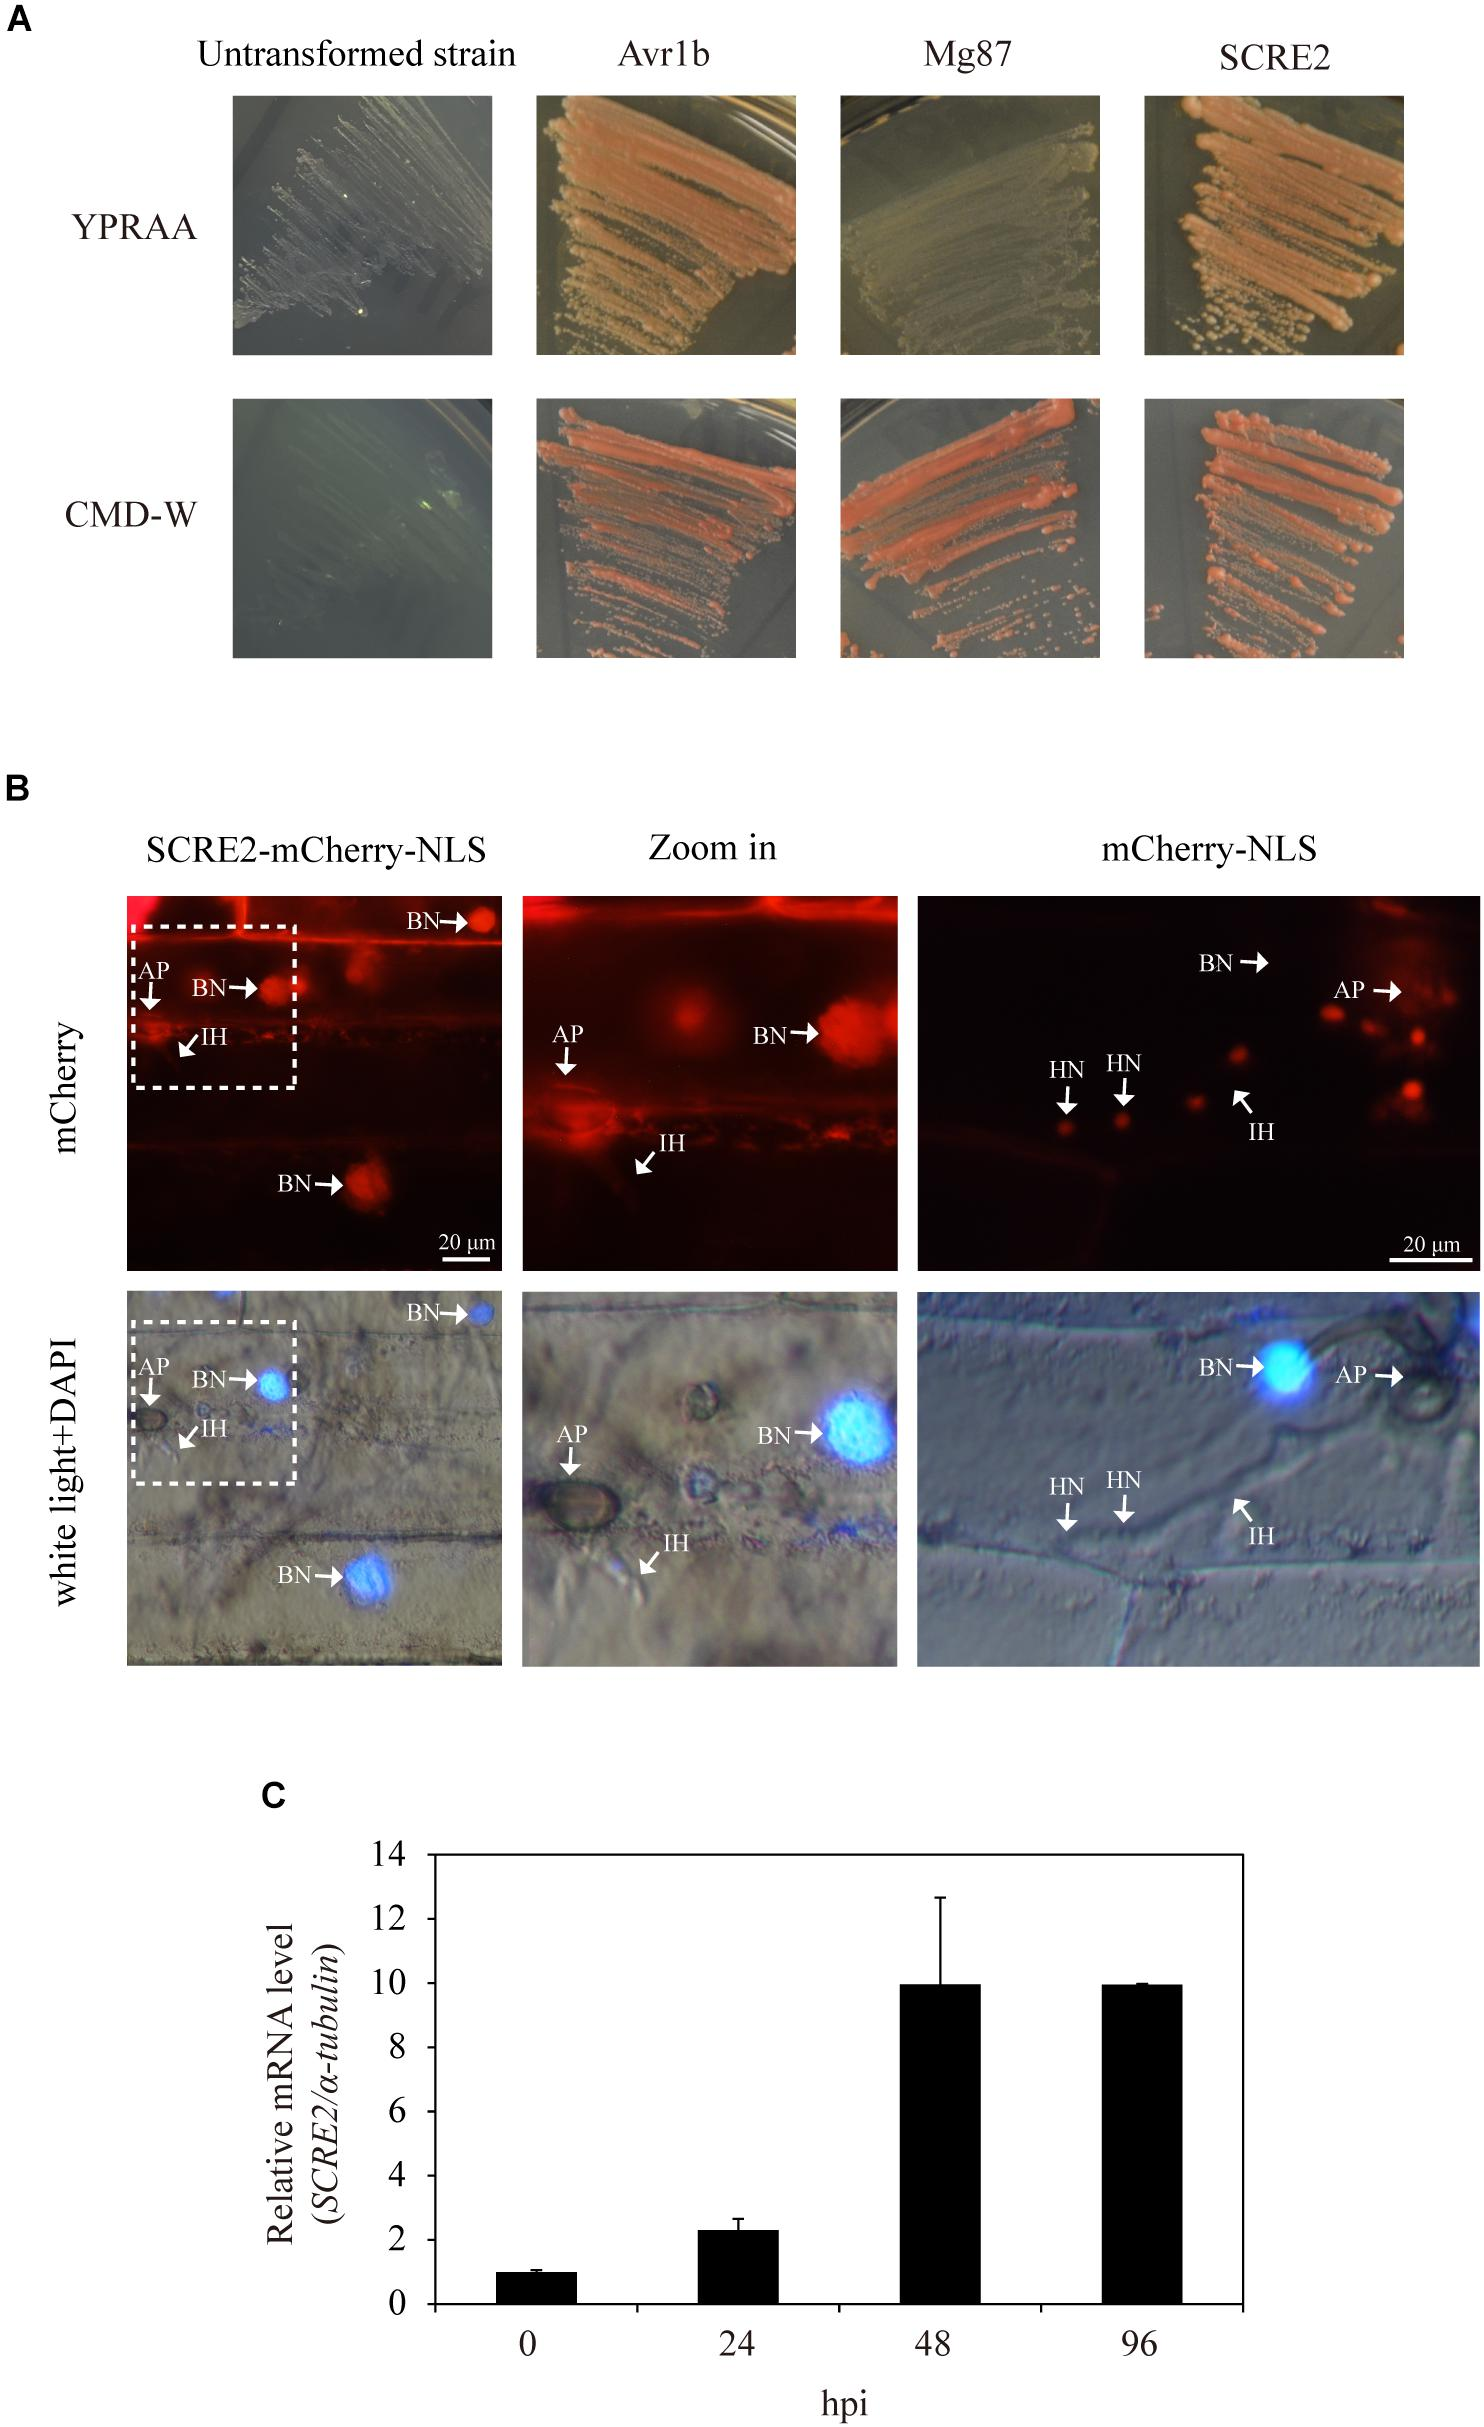 Frontiers | A Novel Effector Gene SCRE2 Contributes to Full